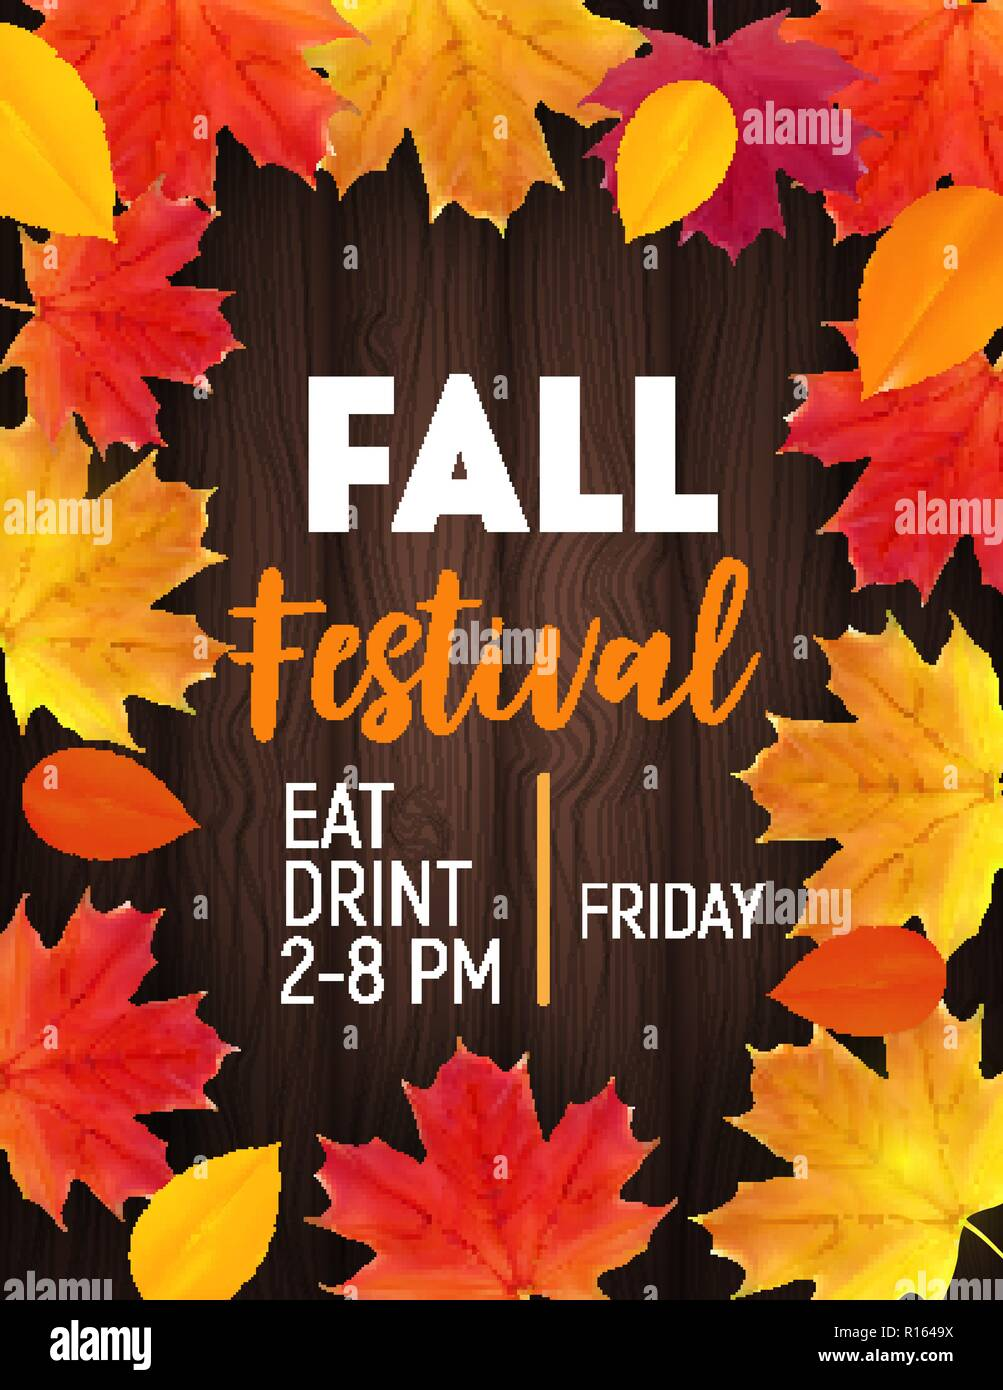 Fall Festival Background with Shiny Autumn Natural Leaves. Vector Illustration Stock Vector